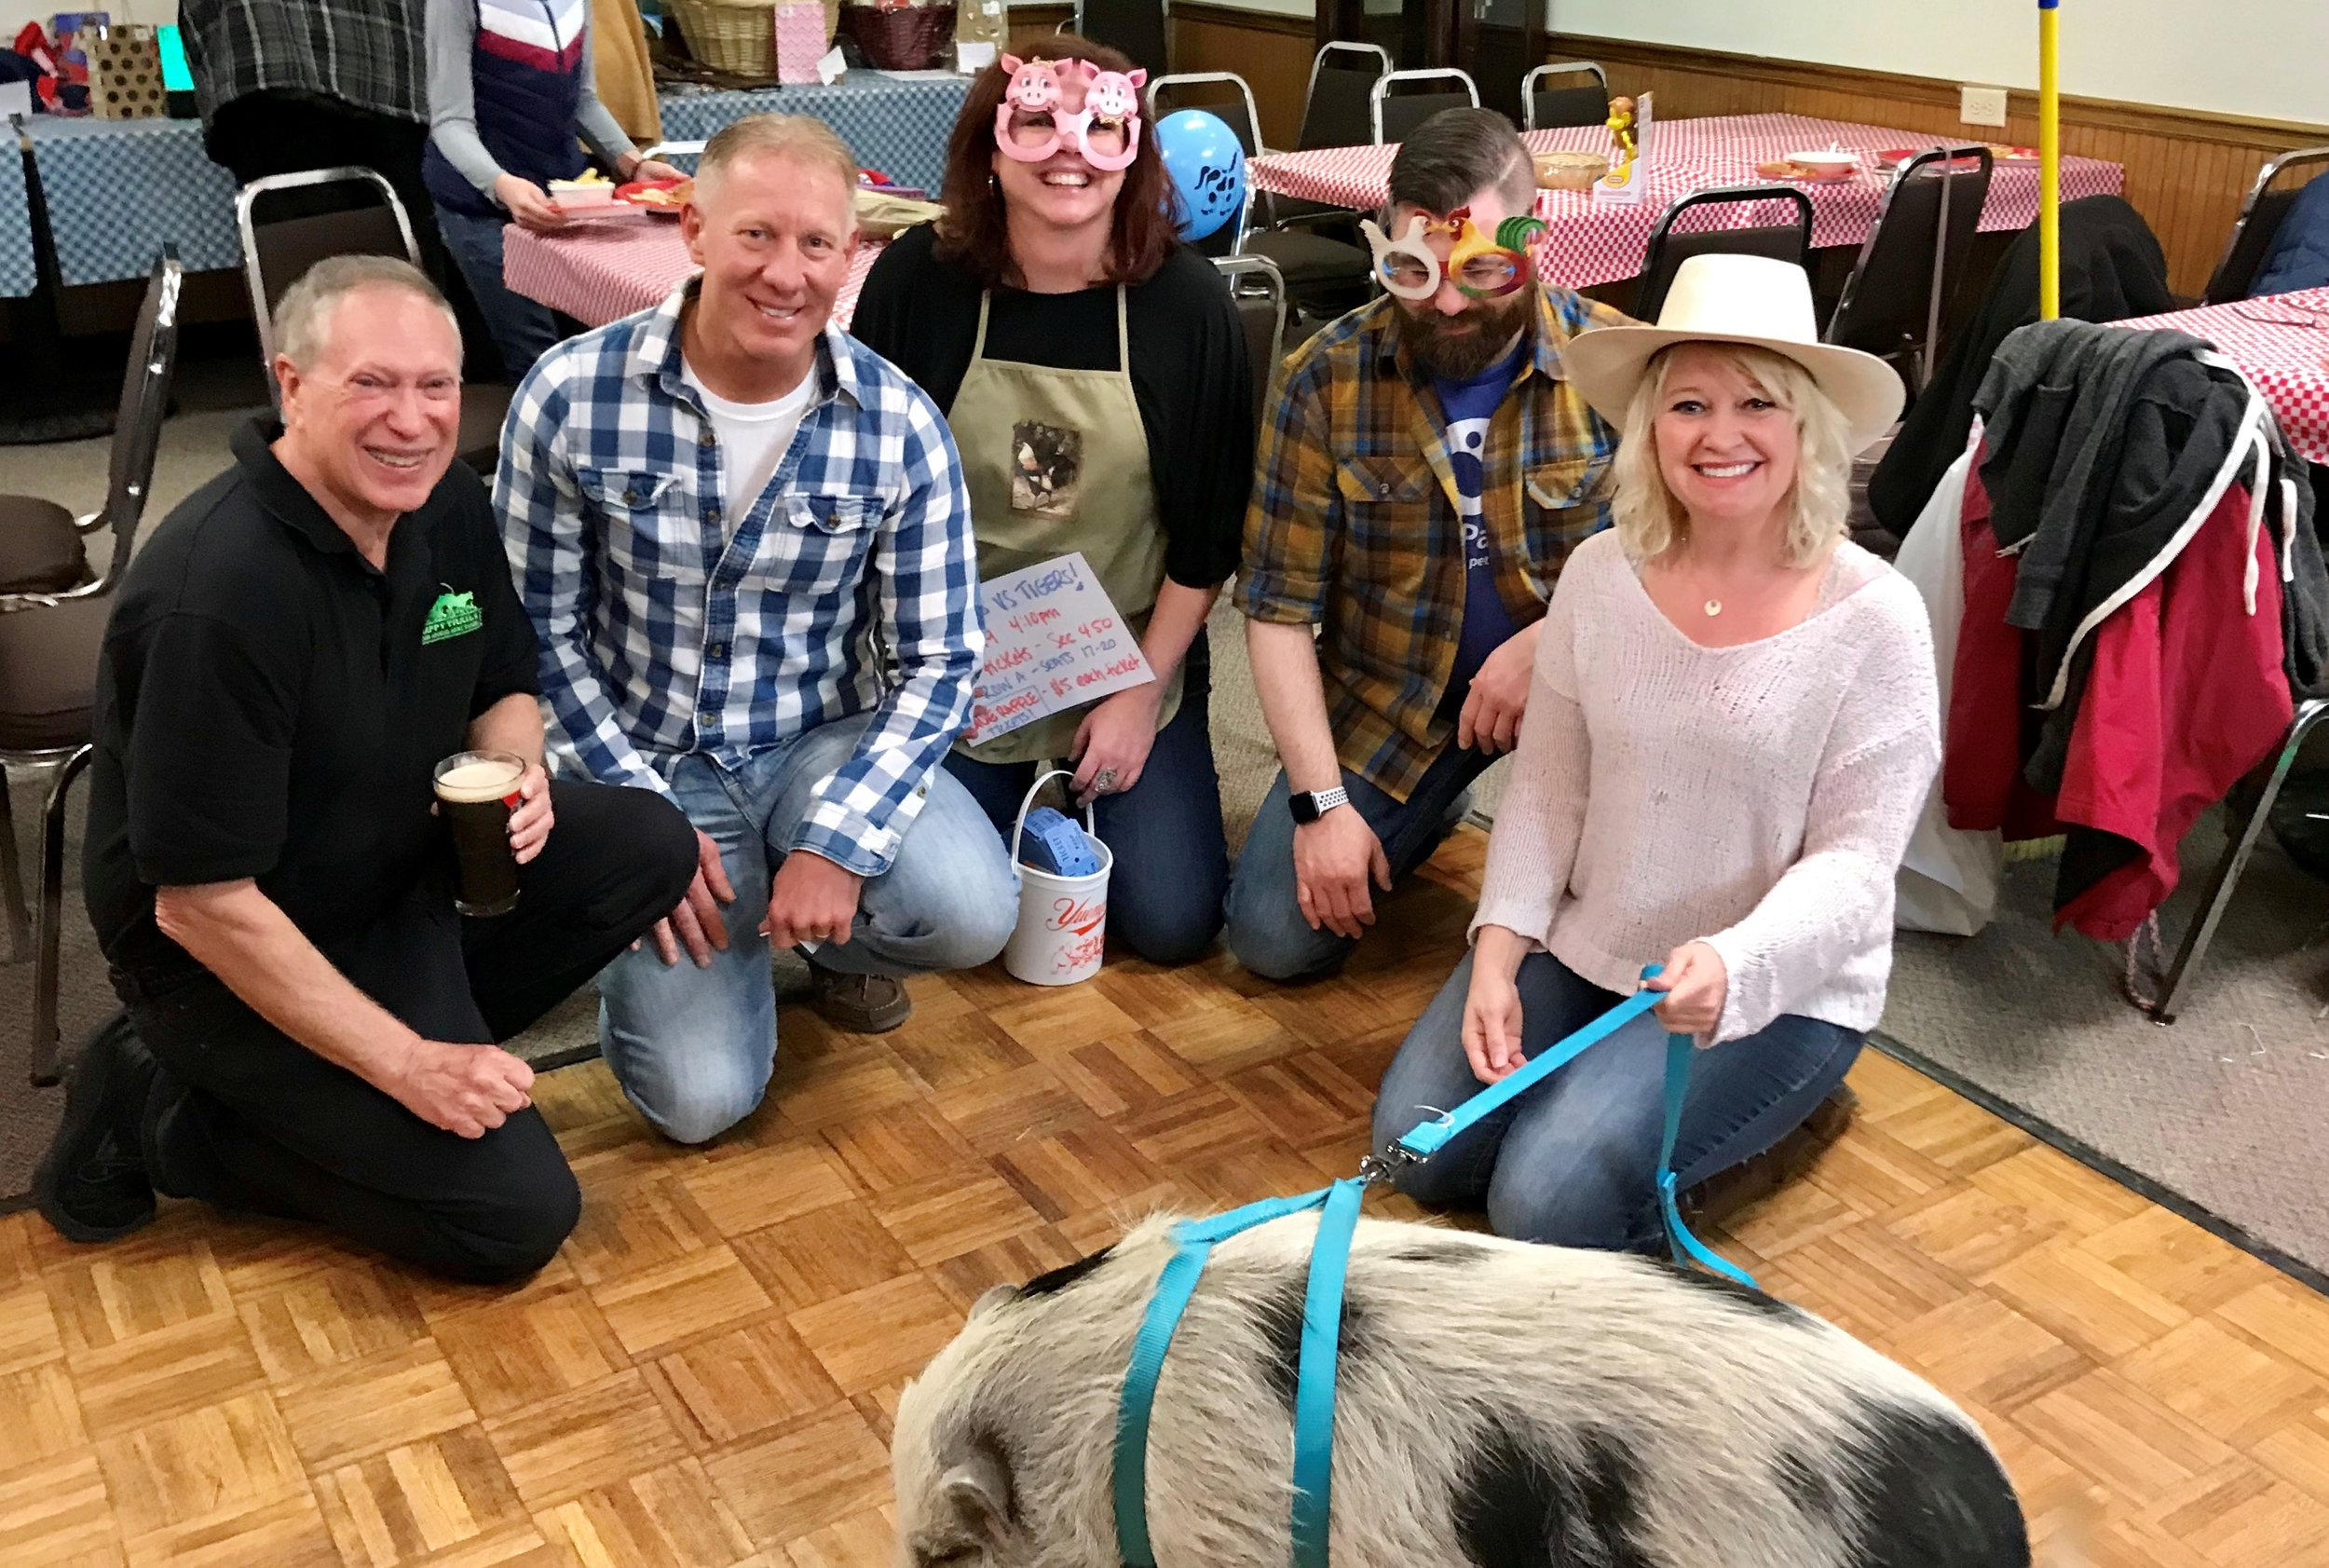 Pictured from left, Fred Lefton Volunteer Coordinator Happy Trails, Mayor Don Walters, Missie Kline PER, Eddie Hayek, Sarah Whitford Leading ER, and Mandy the Pot-Belly Rescue Pig.